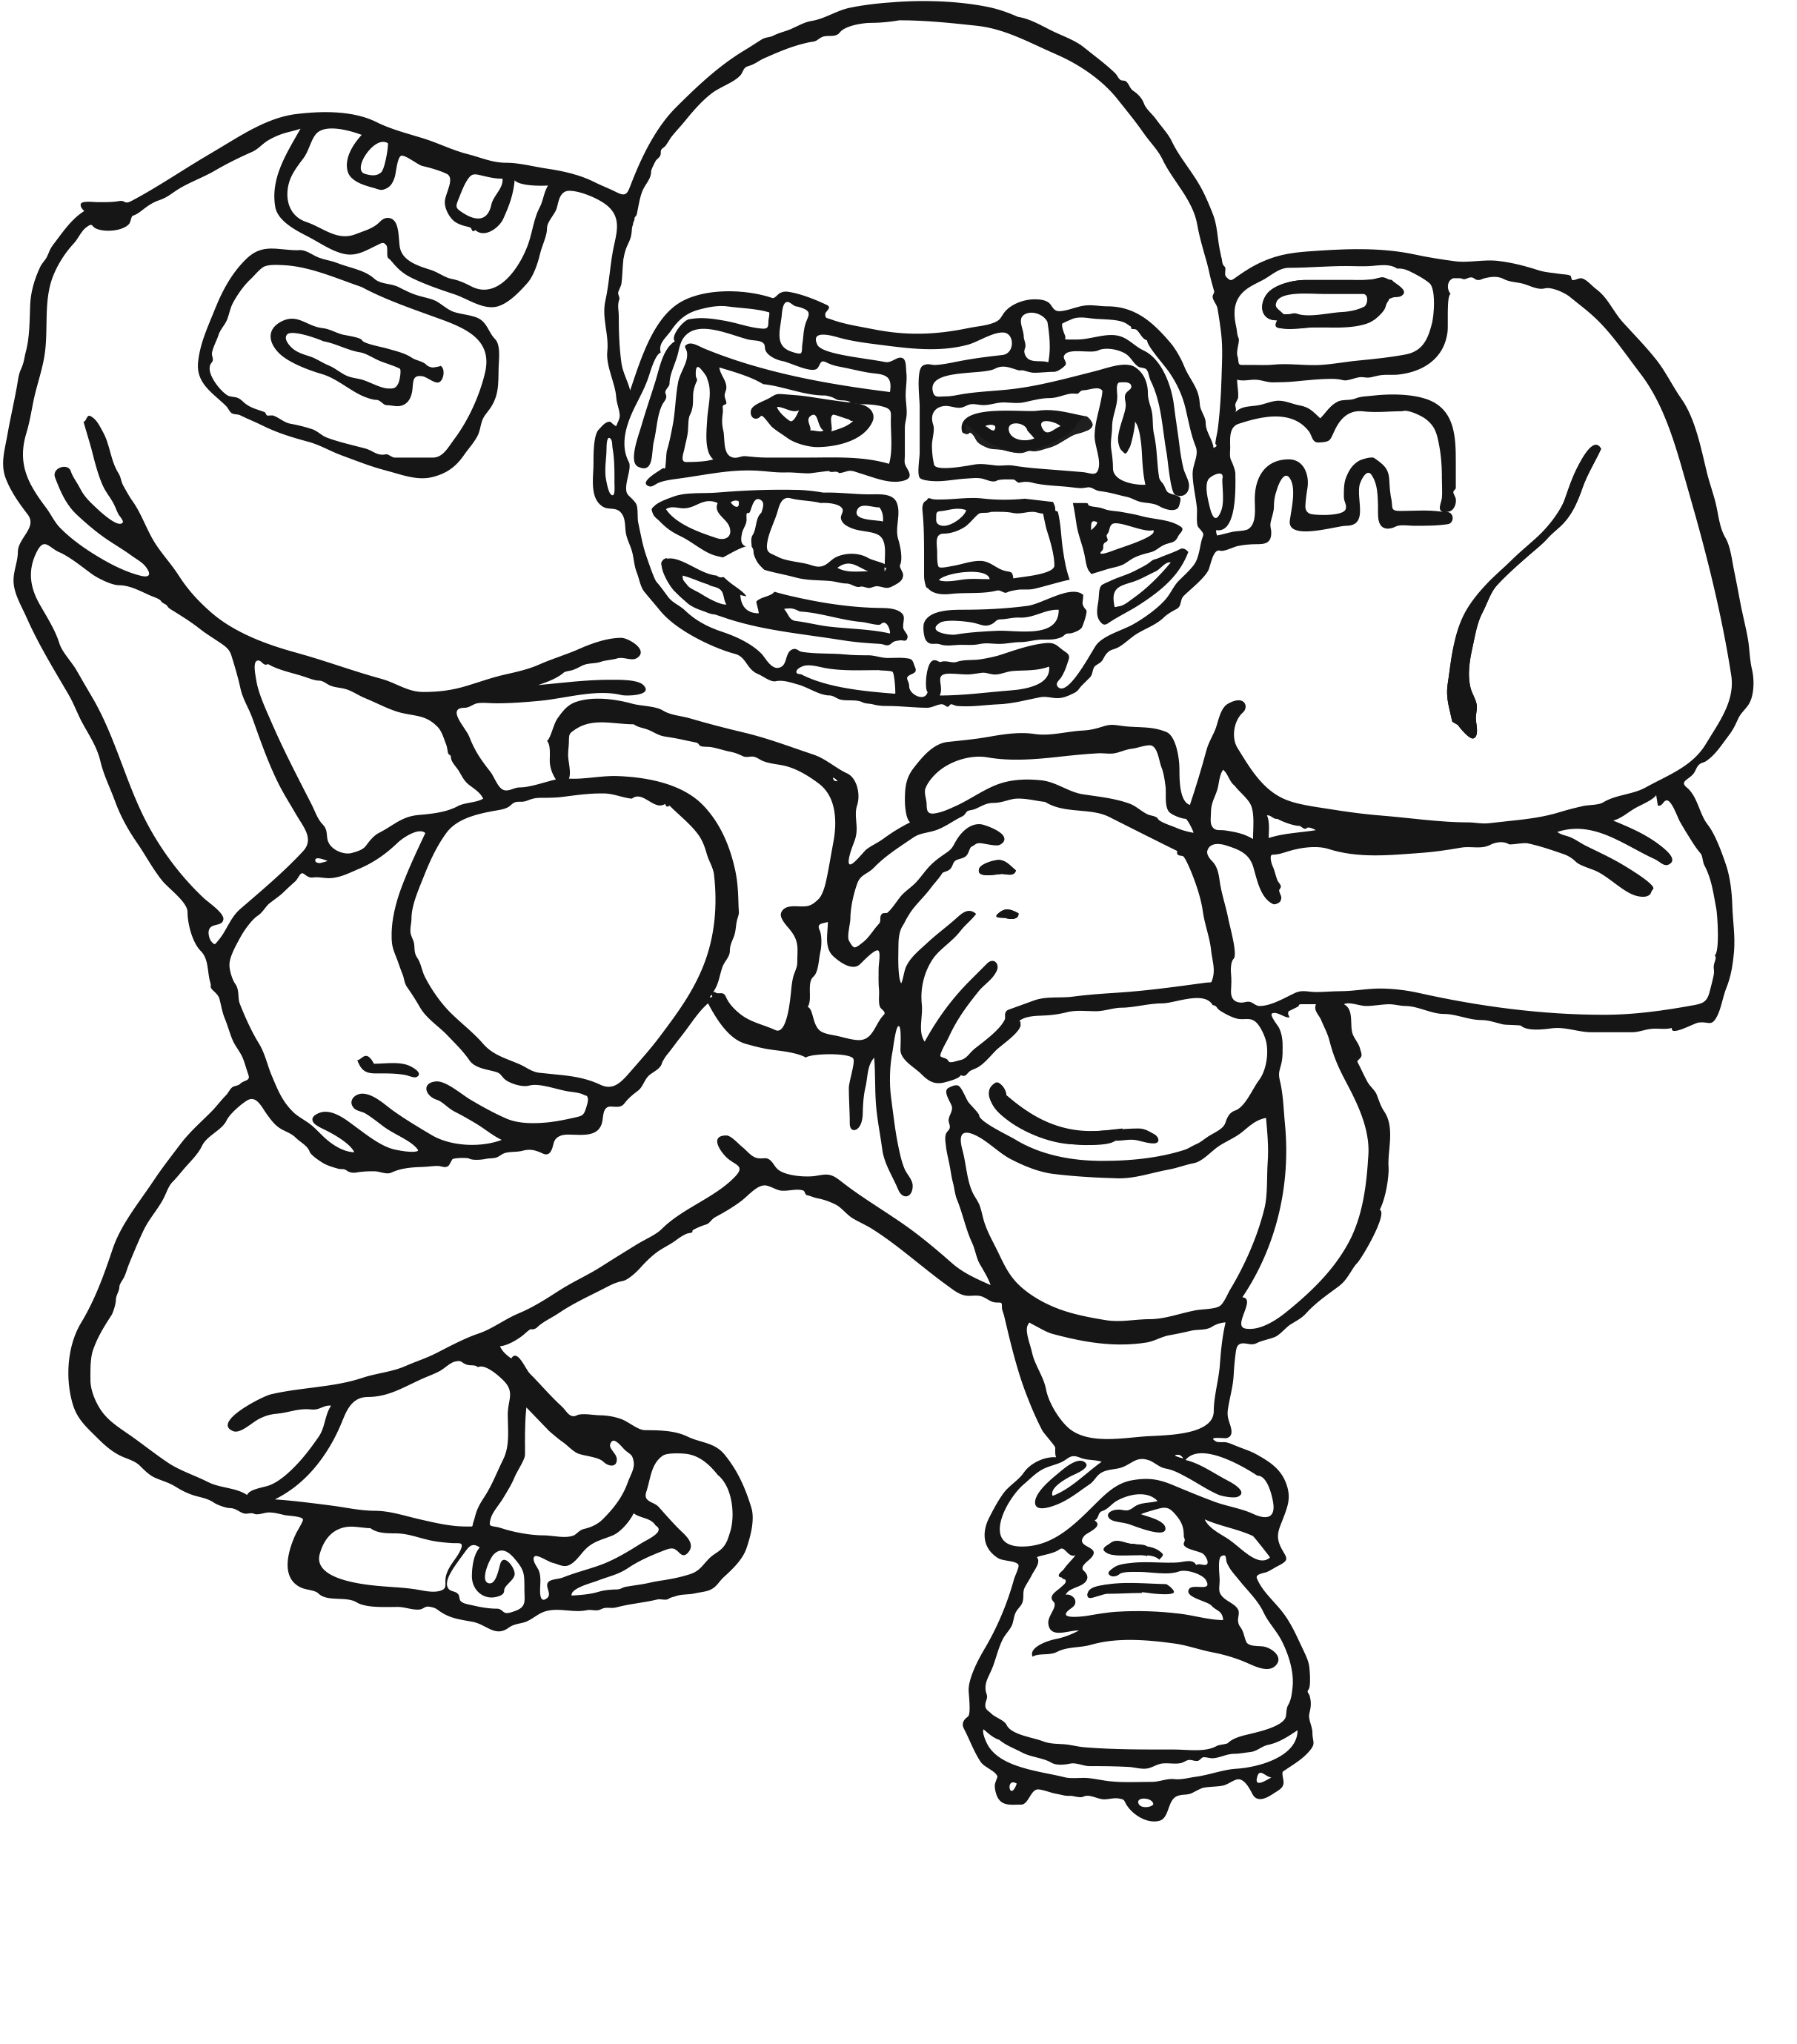 Football player coloring pictures